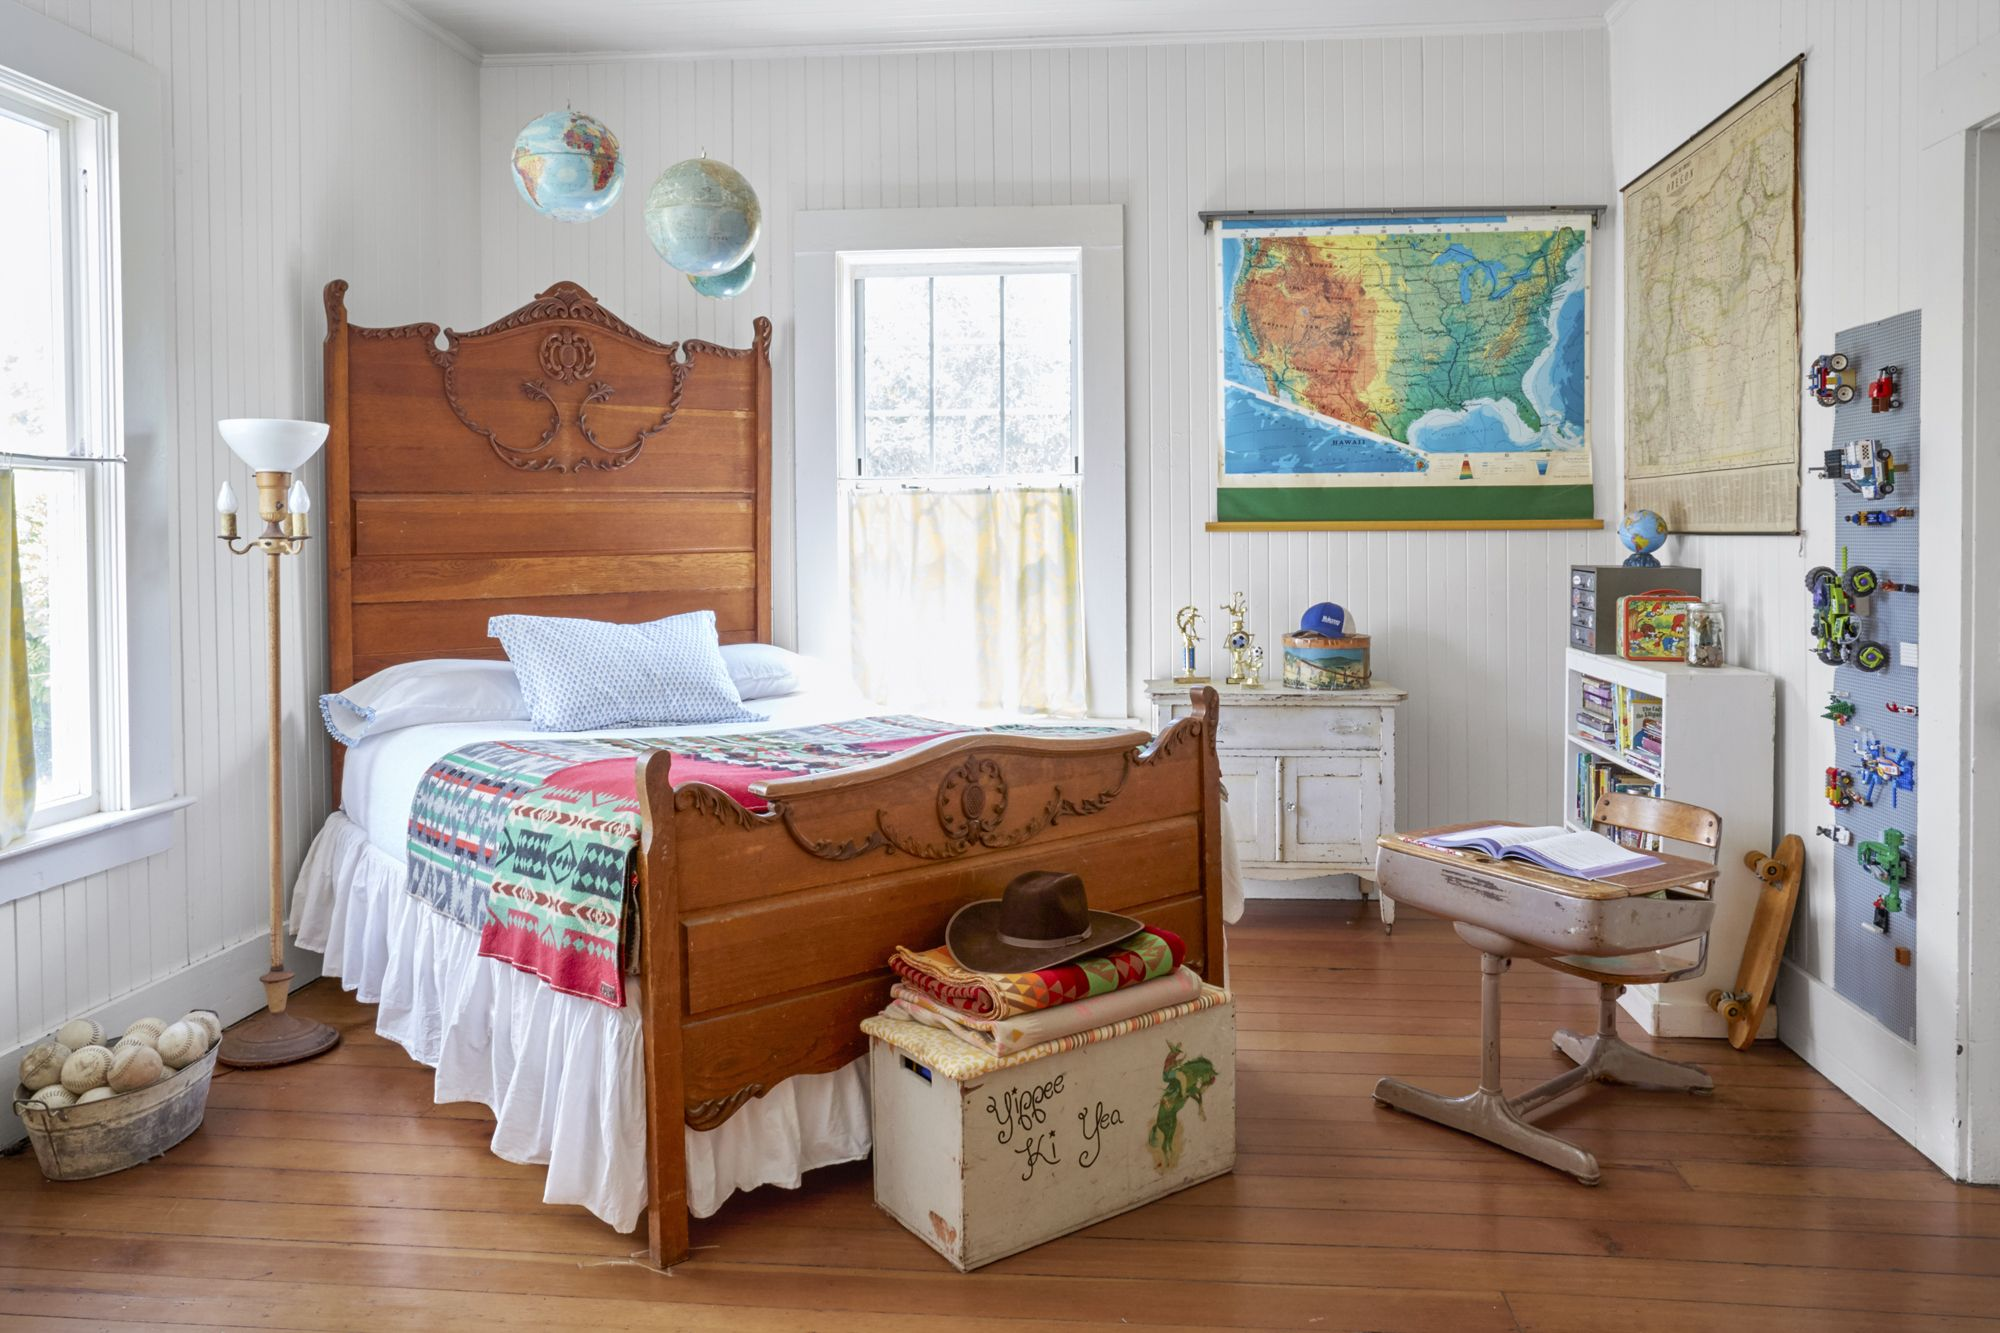 16 vintage decorating ideas from inside a 19th century for 16 year old bedroom designs